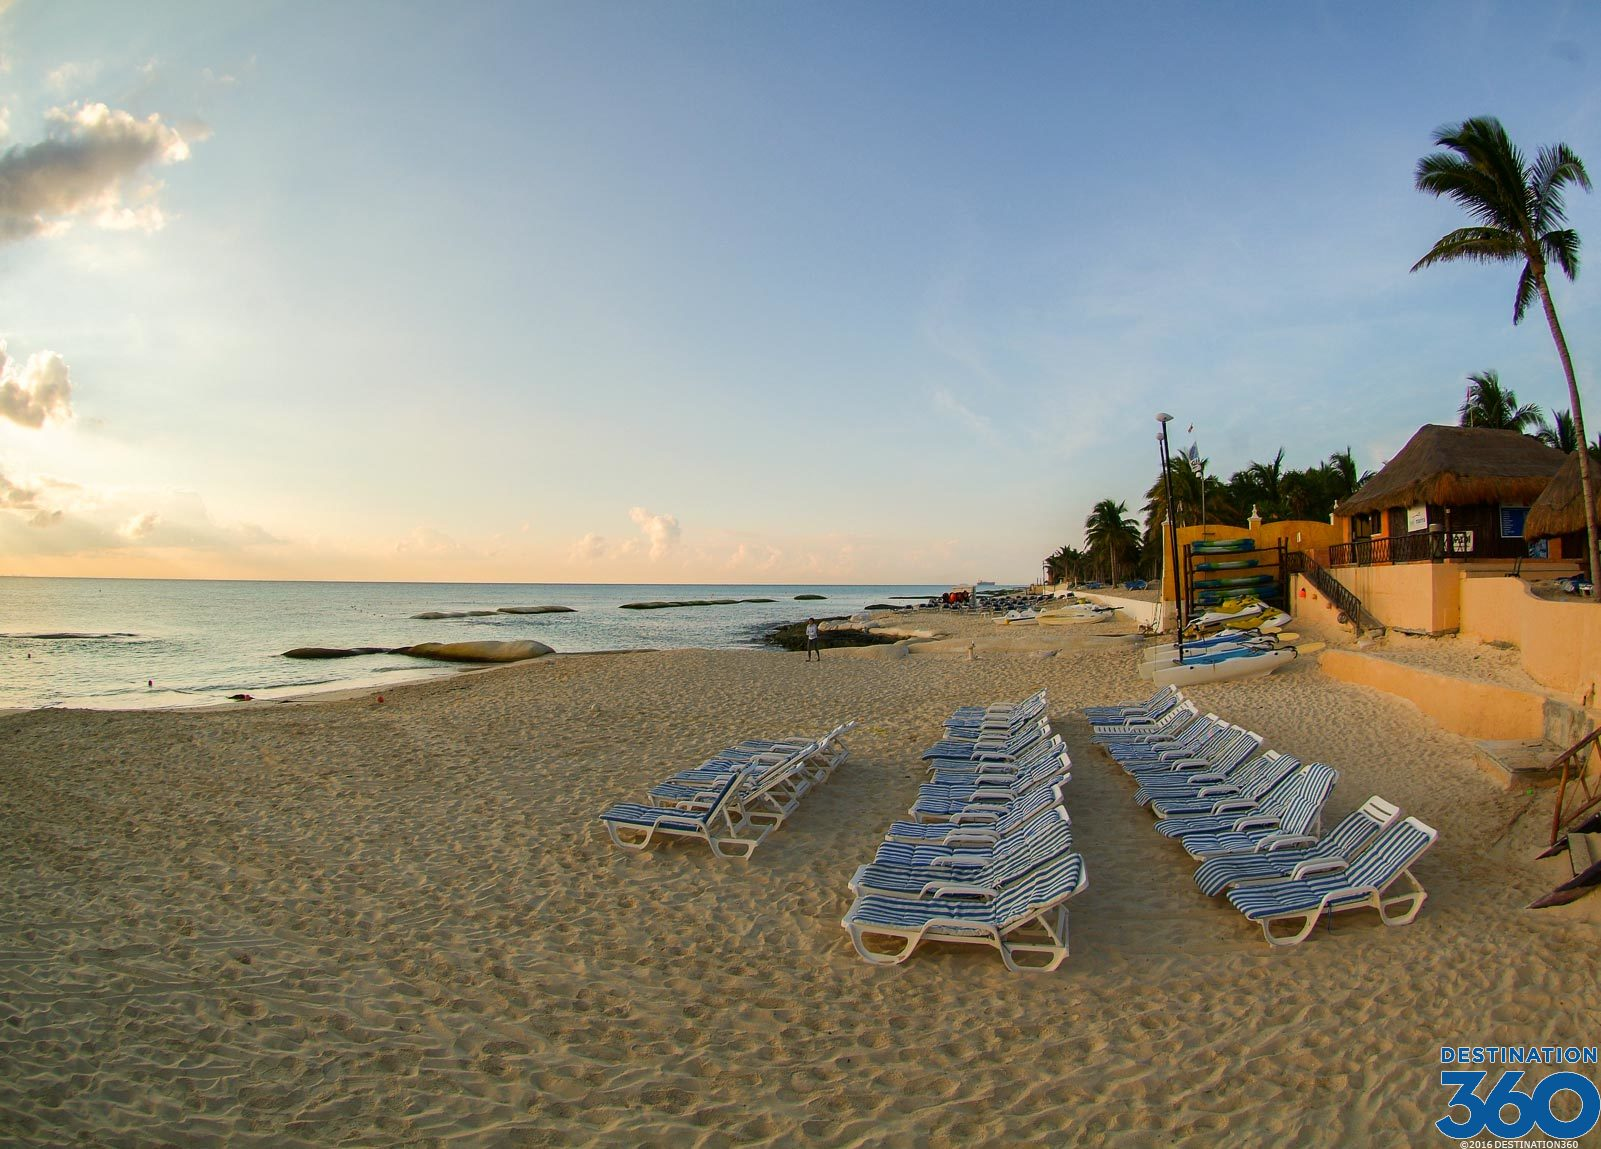 Just like Cancun, Playa del Carmen is a very popular tourist destination for